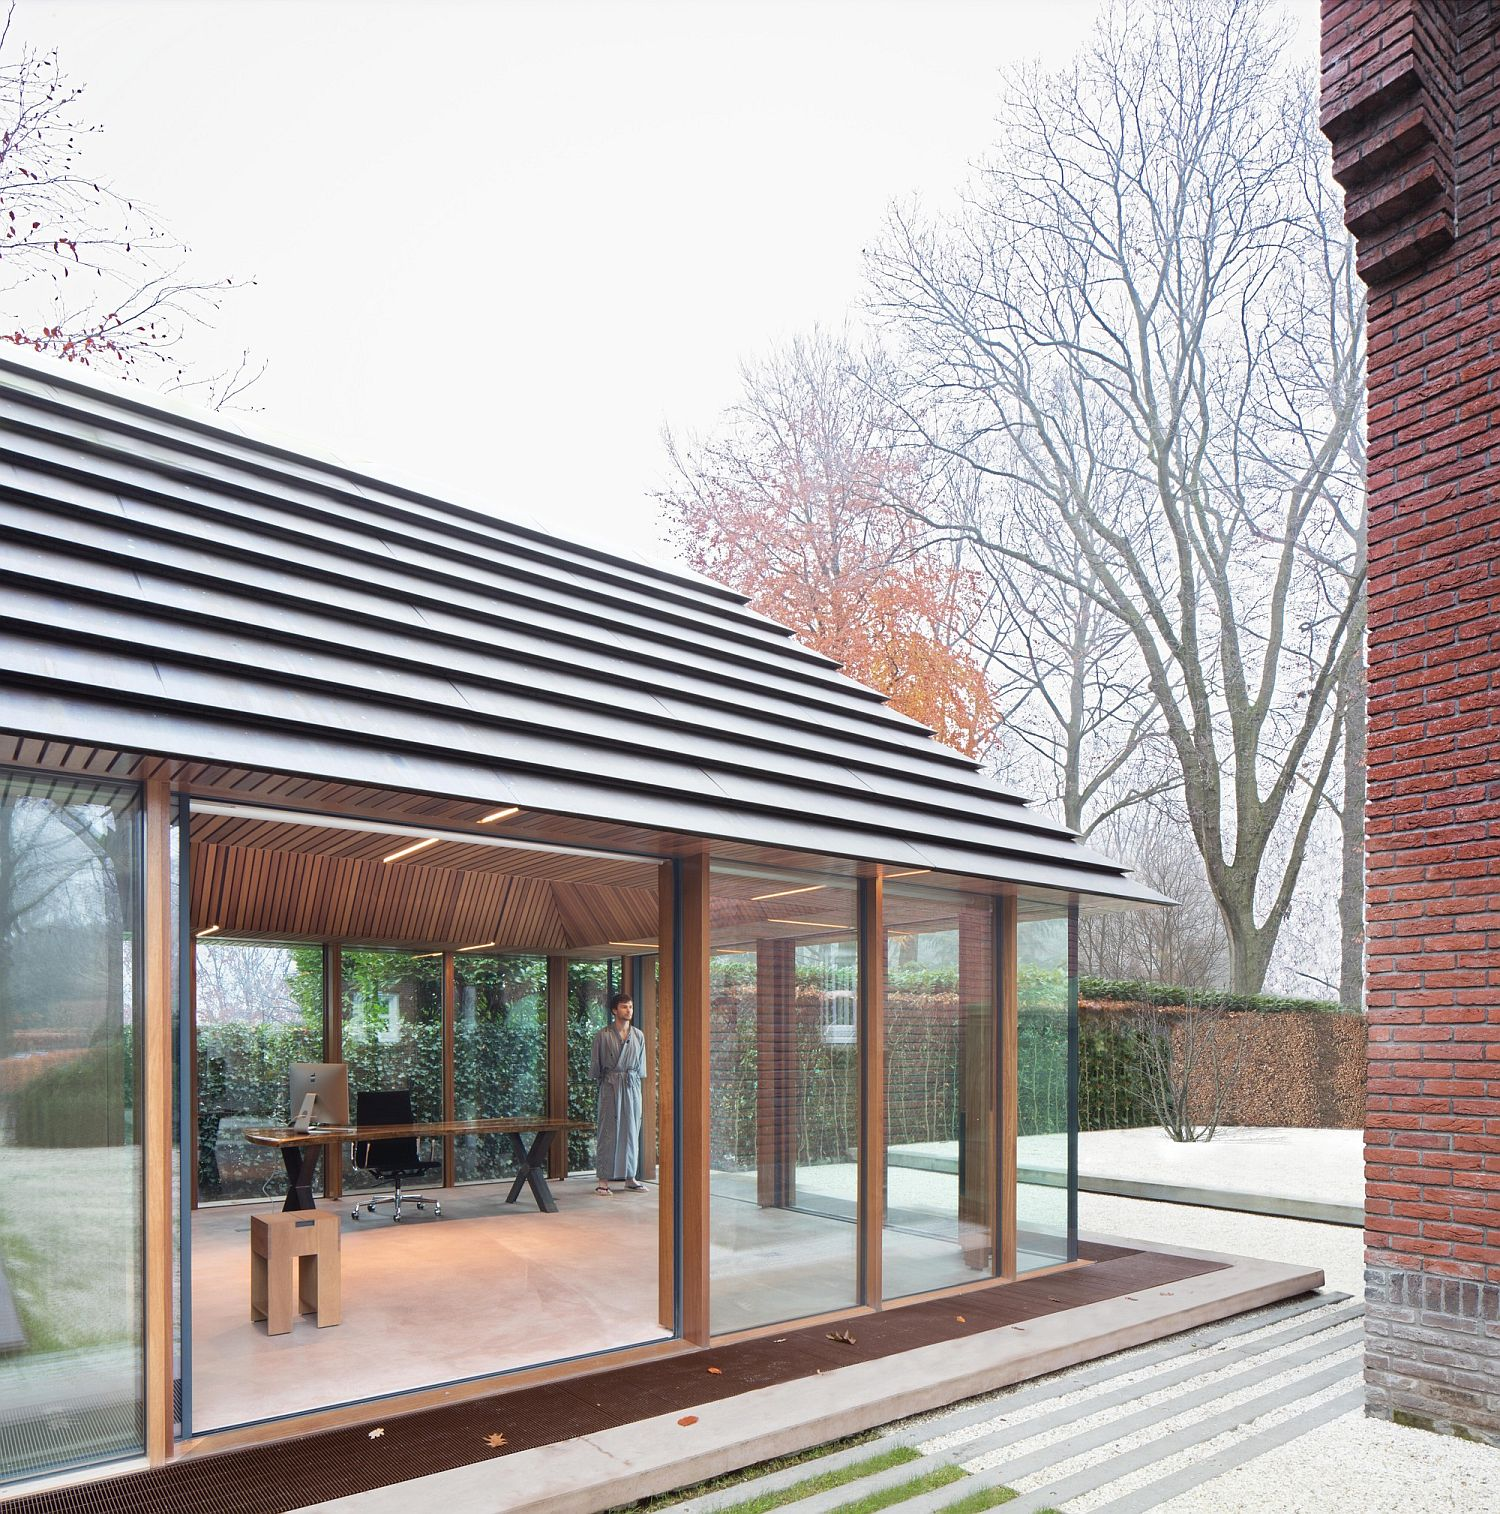 Tiny Office Pavilion Vught sits next to a classic Dutch home with red brick exterior